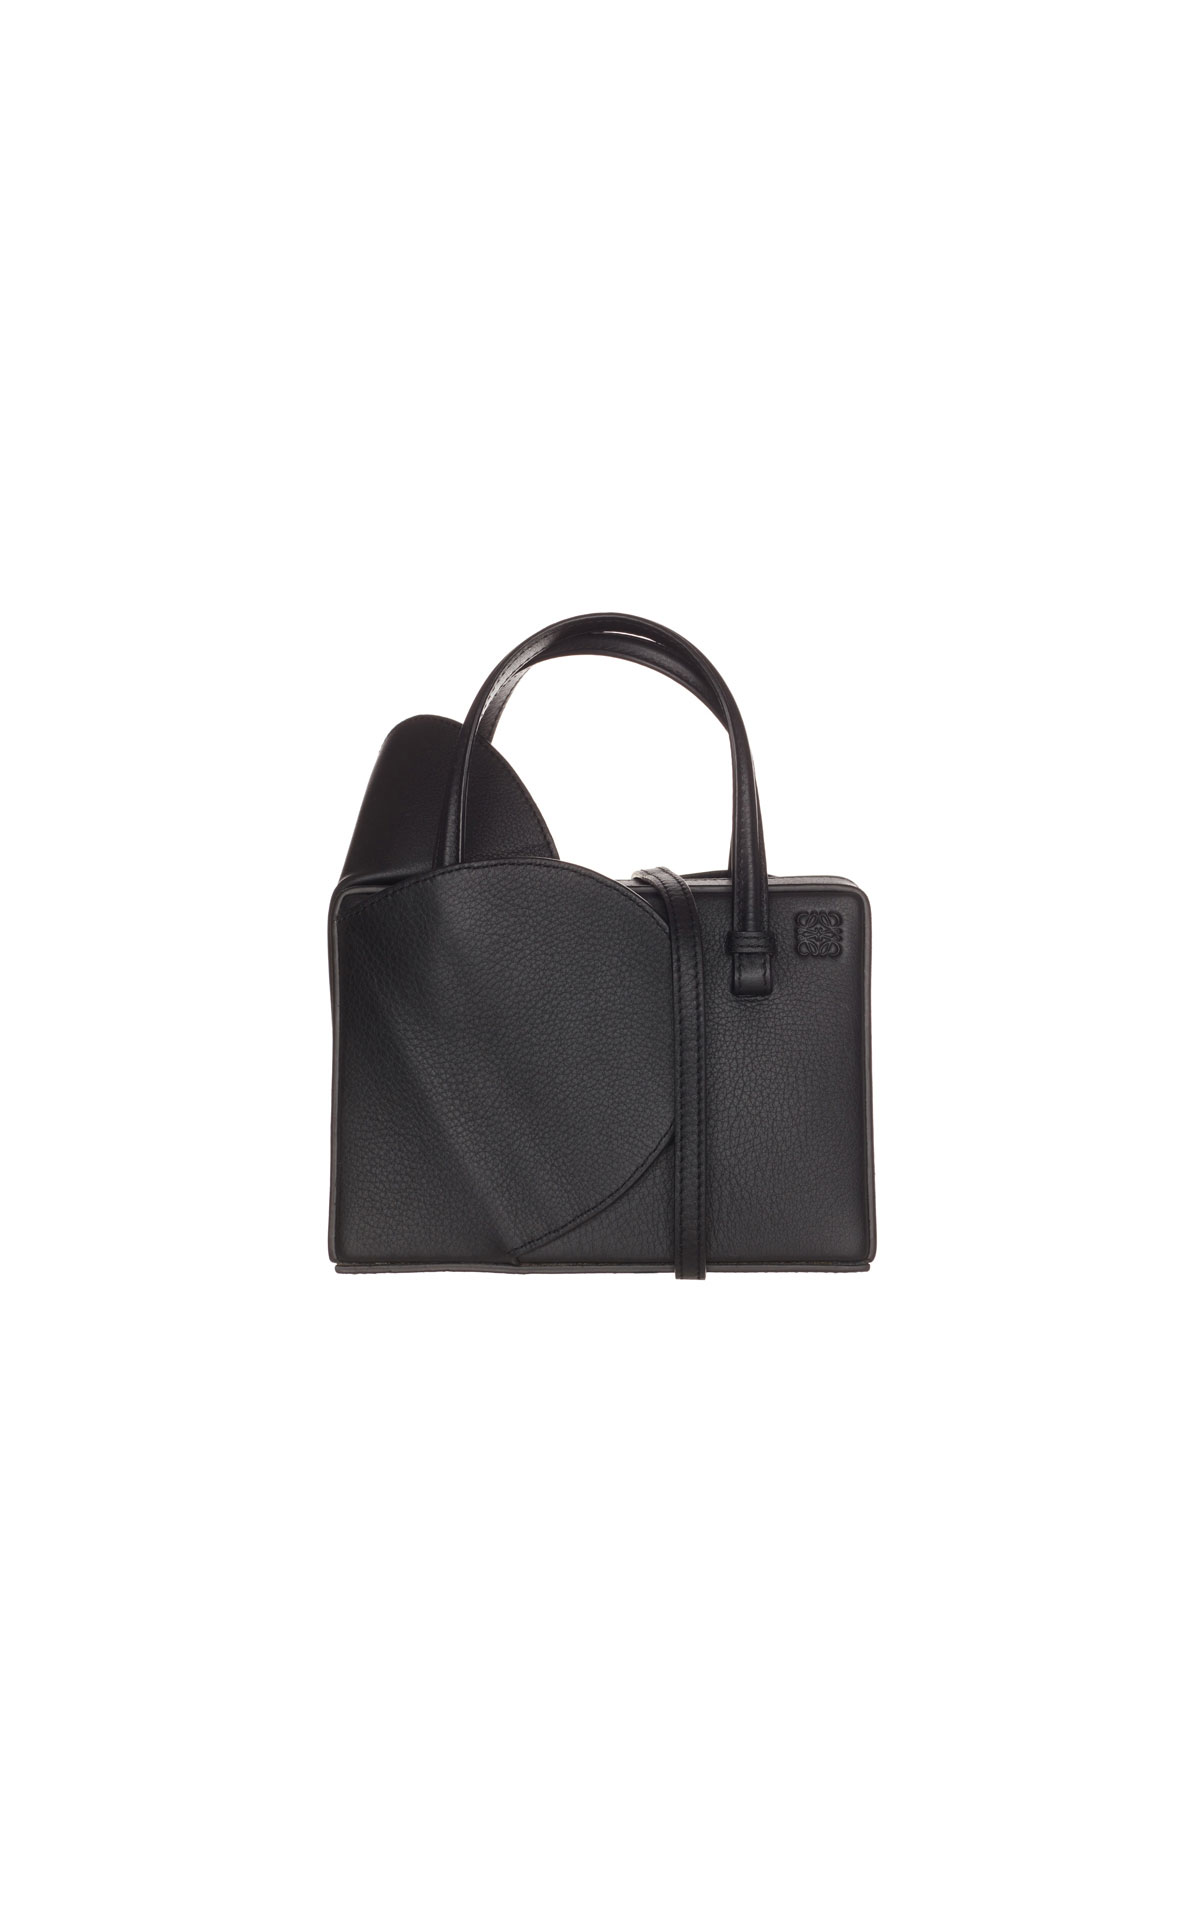 Loewe Postal wings small black from Bicester Village